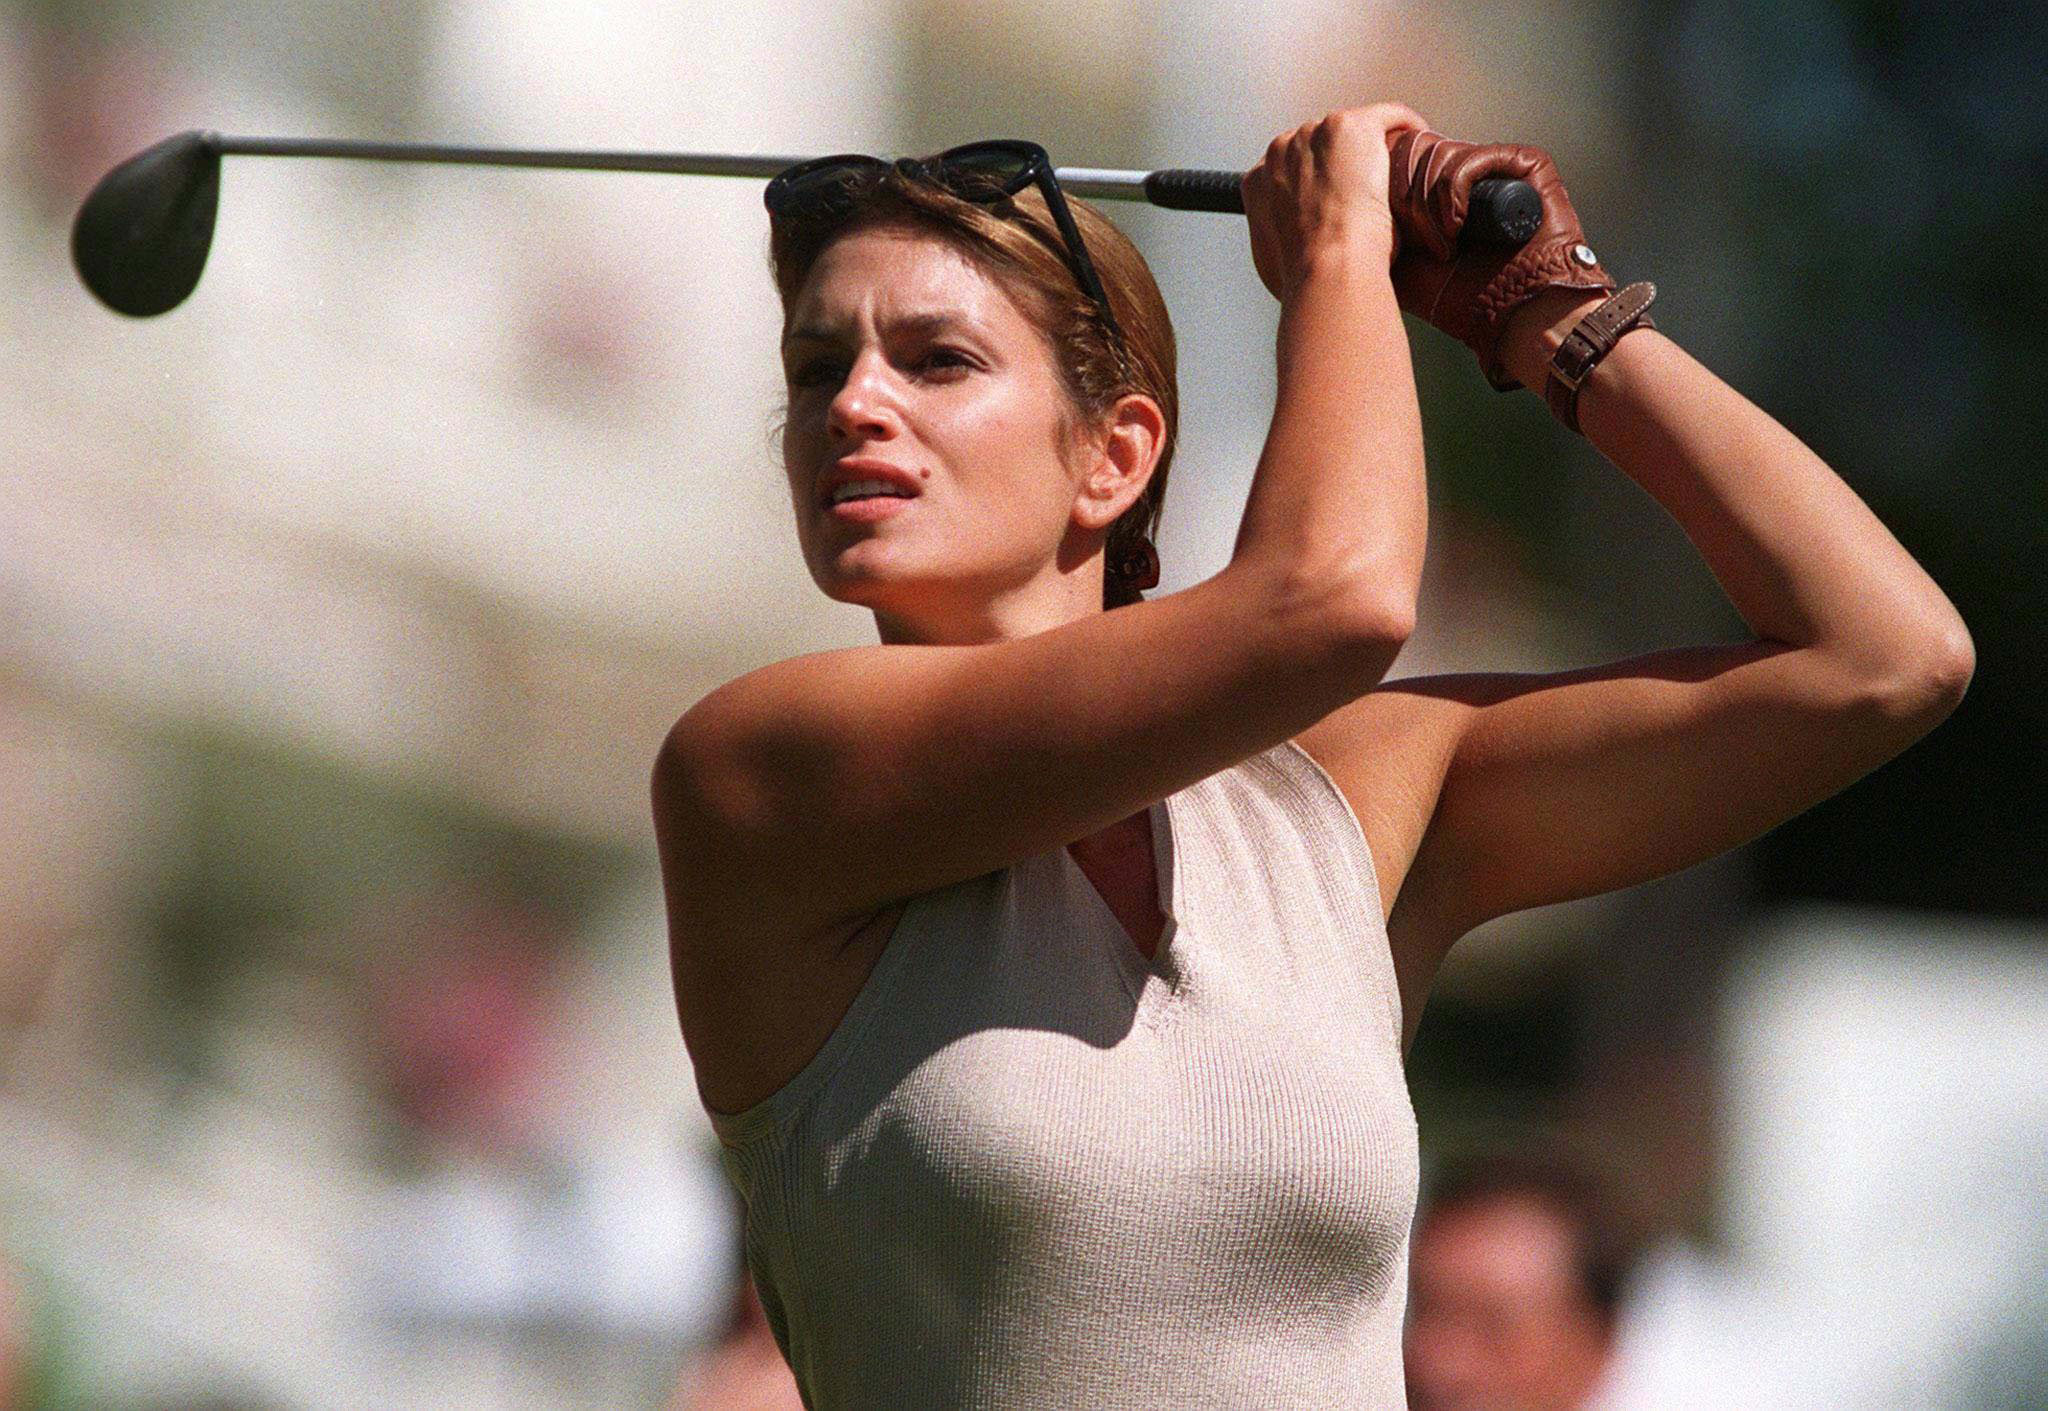 LAU02:SPORT-GOLF:CRANS MONTANA,SWITZERLAND,1SEP97 - Supermodel Cindy Crawford tees off at the Omaga Celebrity Golf Tournament in Crans Montana, September 1. The tournament took place prior to the European Masters Golf Tournament in Crans Montana which will start September 4. js/mr/Str REUTERS